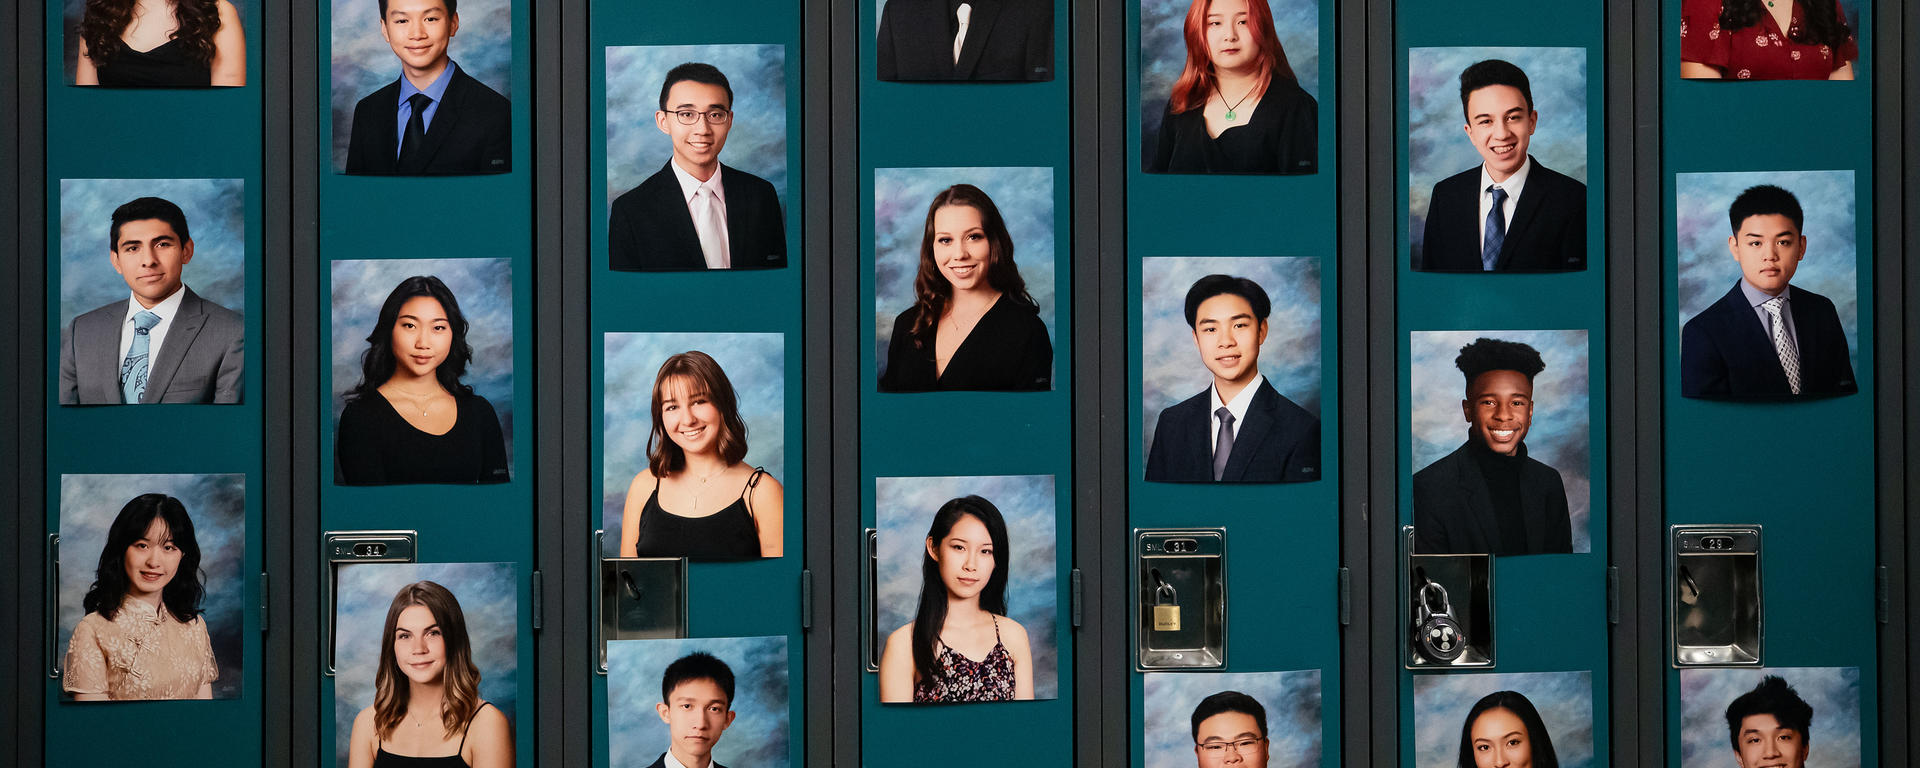 Photos of graduating students are seen on lockers during a graduation ceremony.